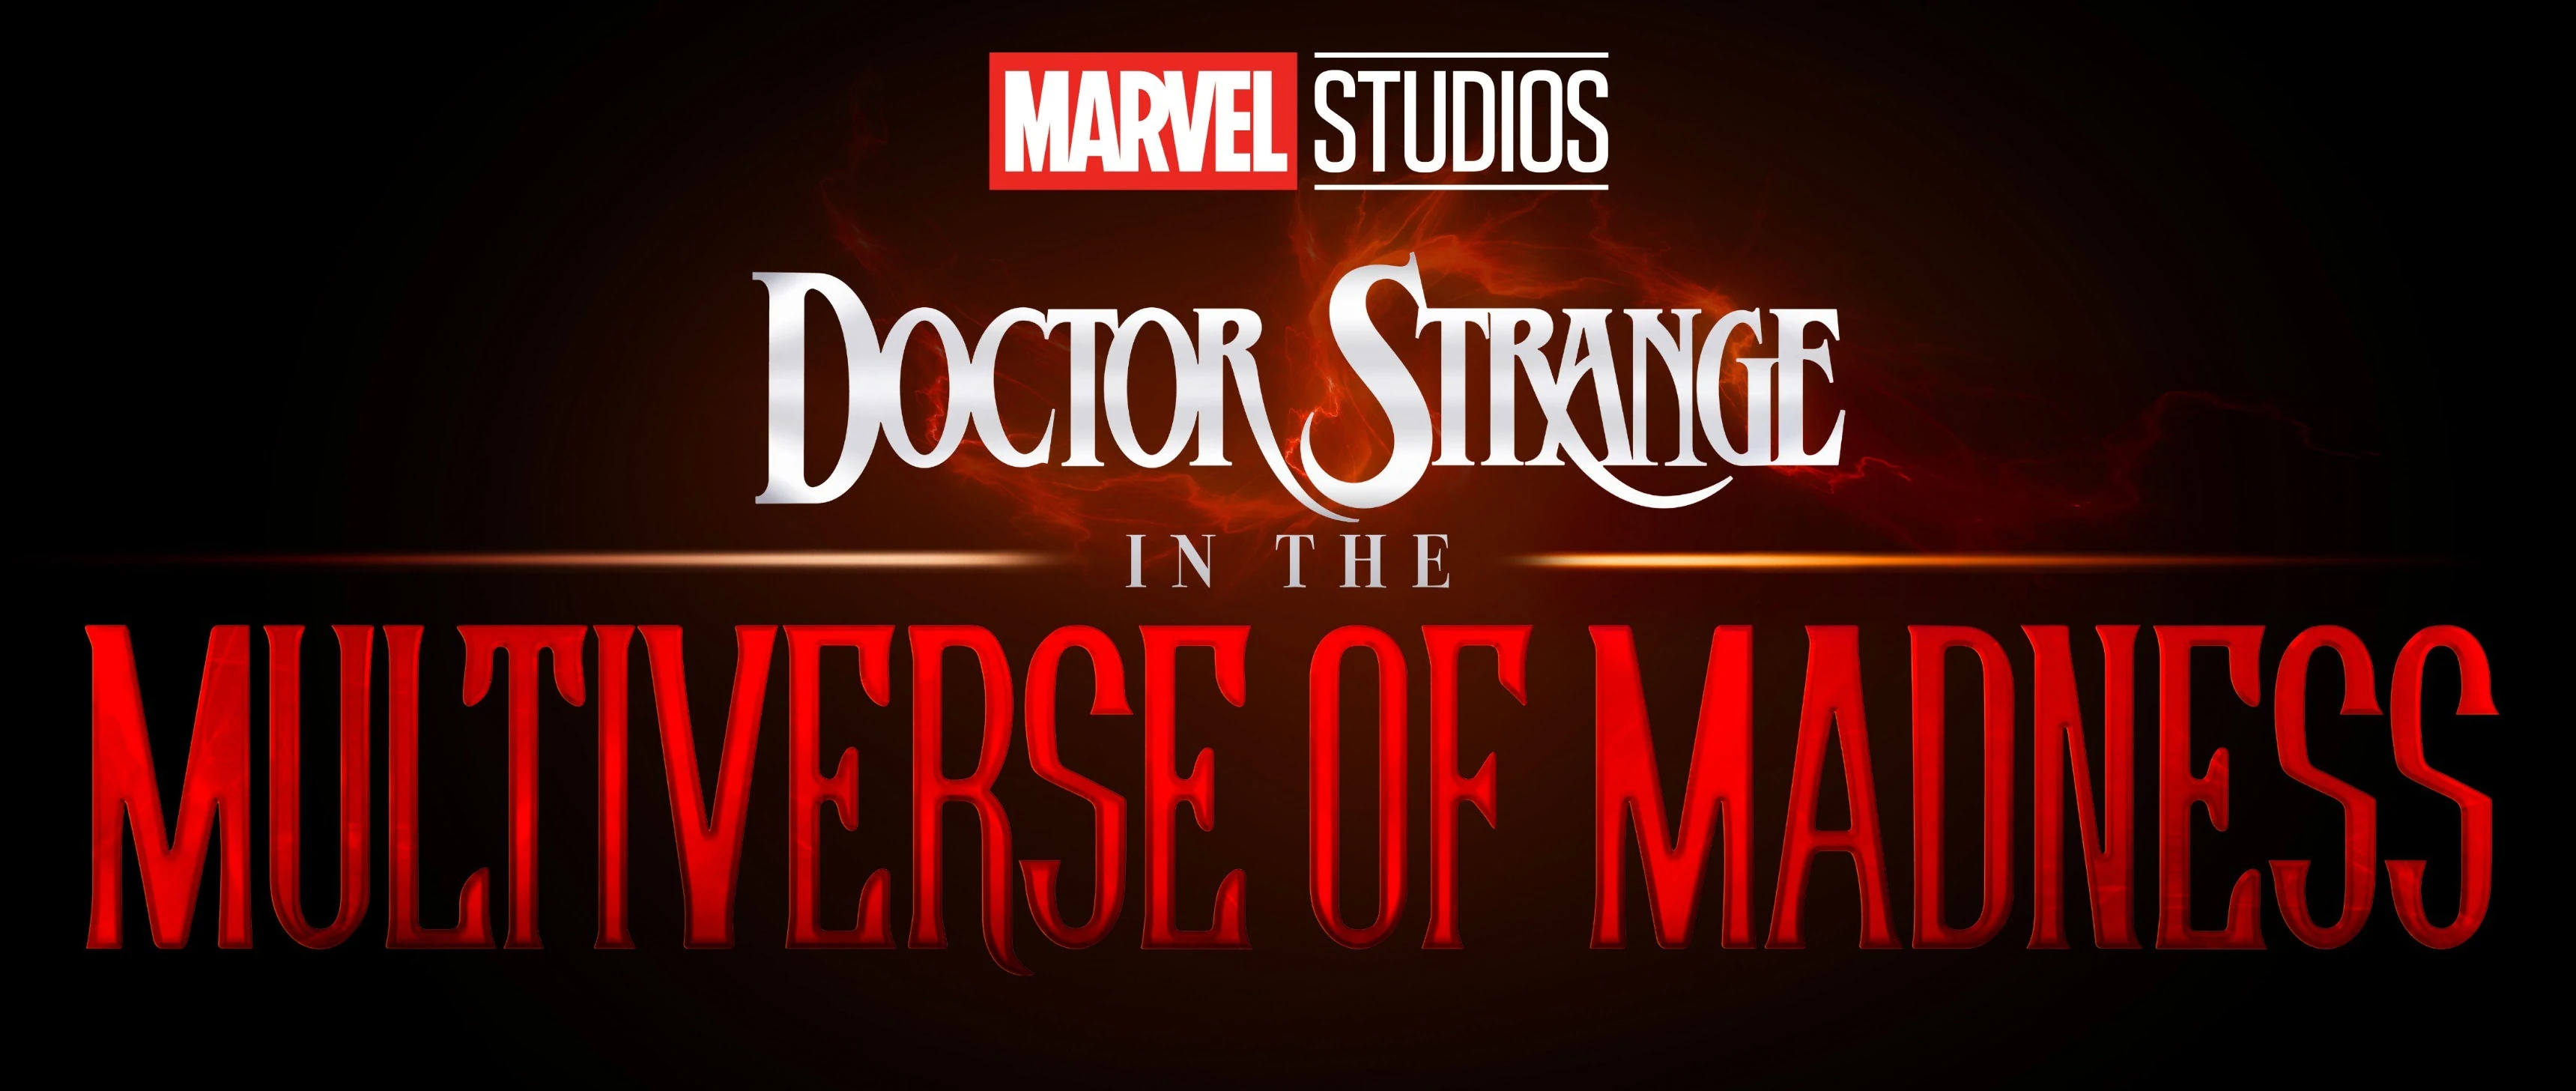 DOCTOR_STRANGE_IN_THE_MULTIVERSE_OF_MADNESS_Logo_Cropped.jpg